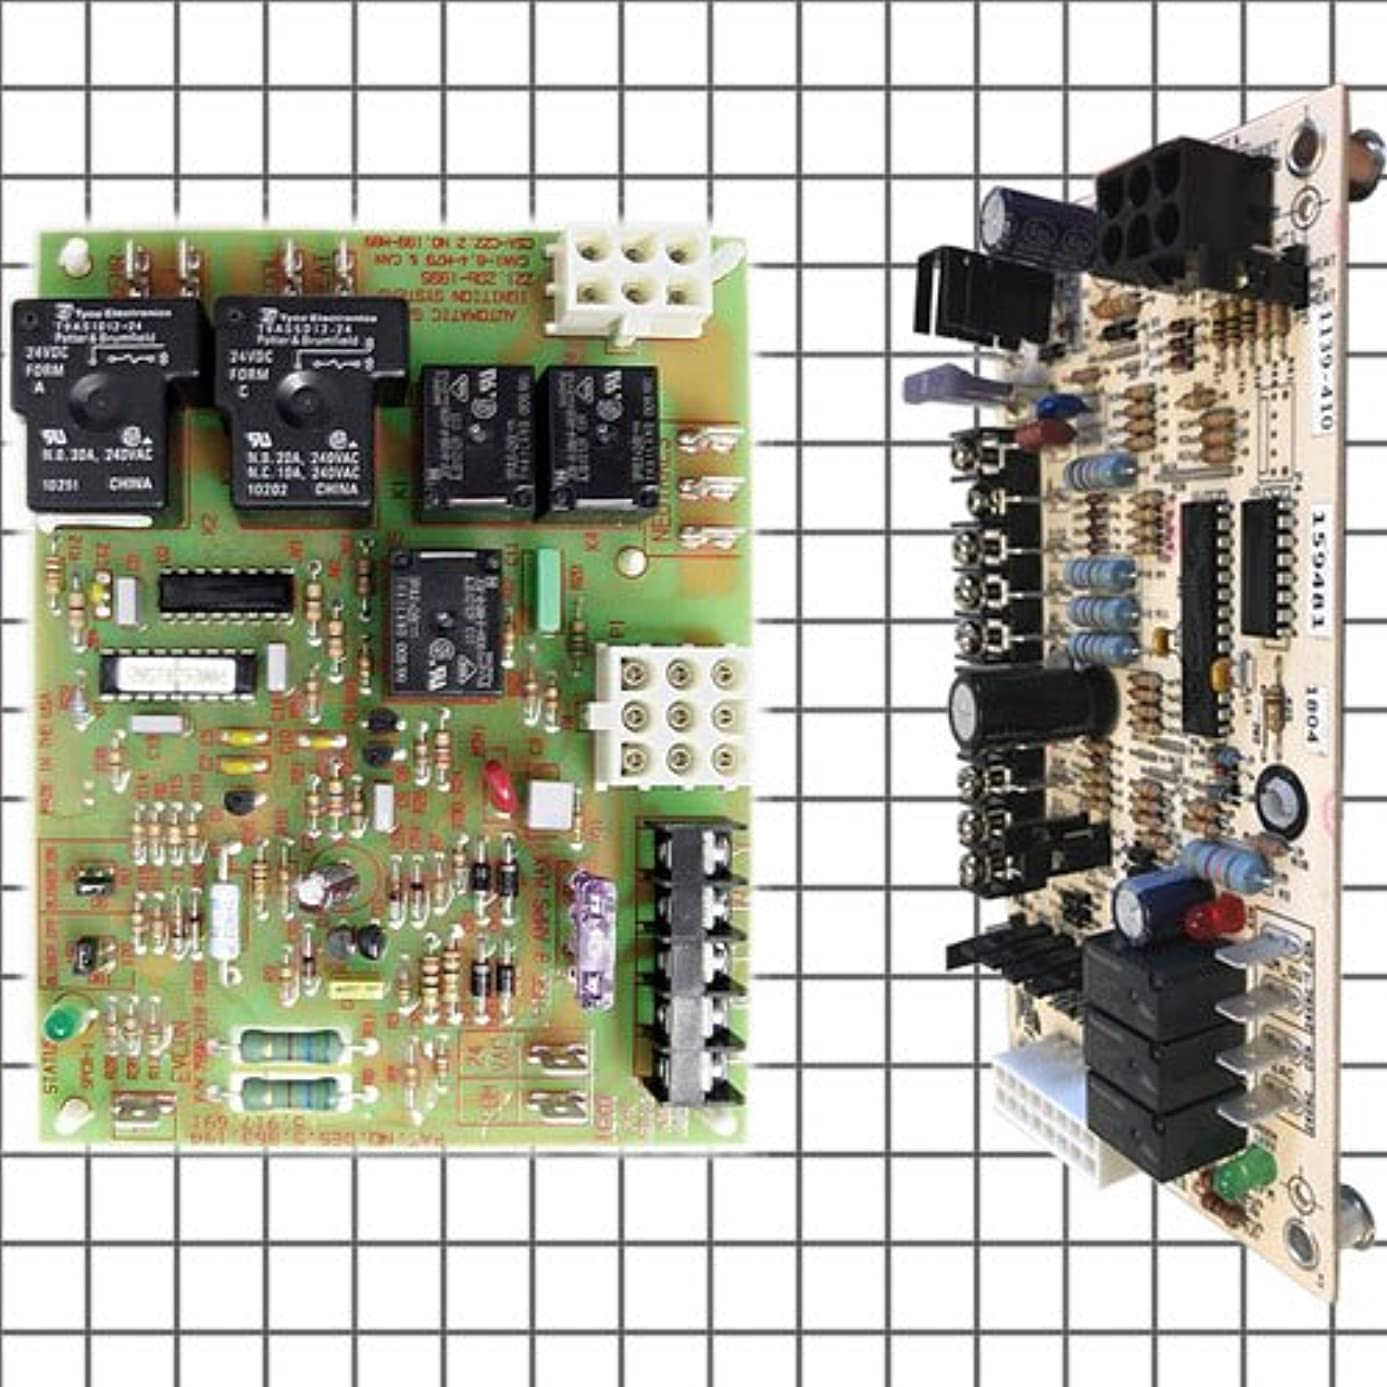 S1-03109161000 - OEM Upgraded Replacement for York Control Circuit Board